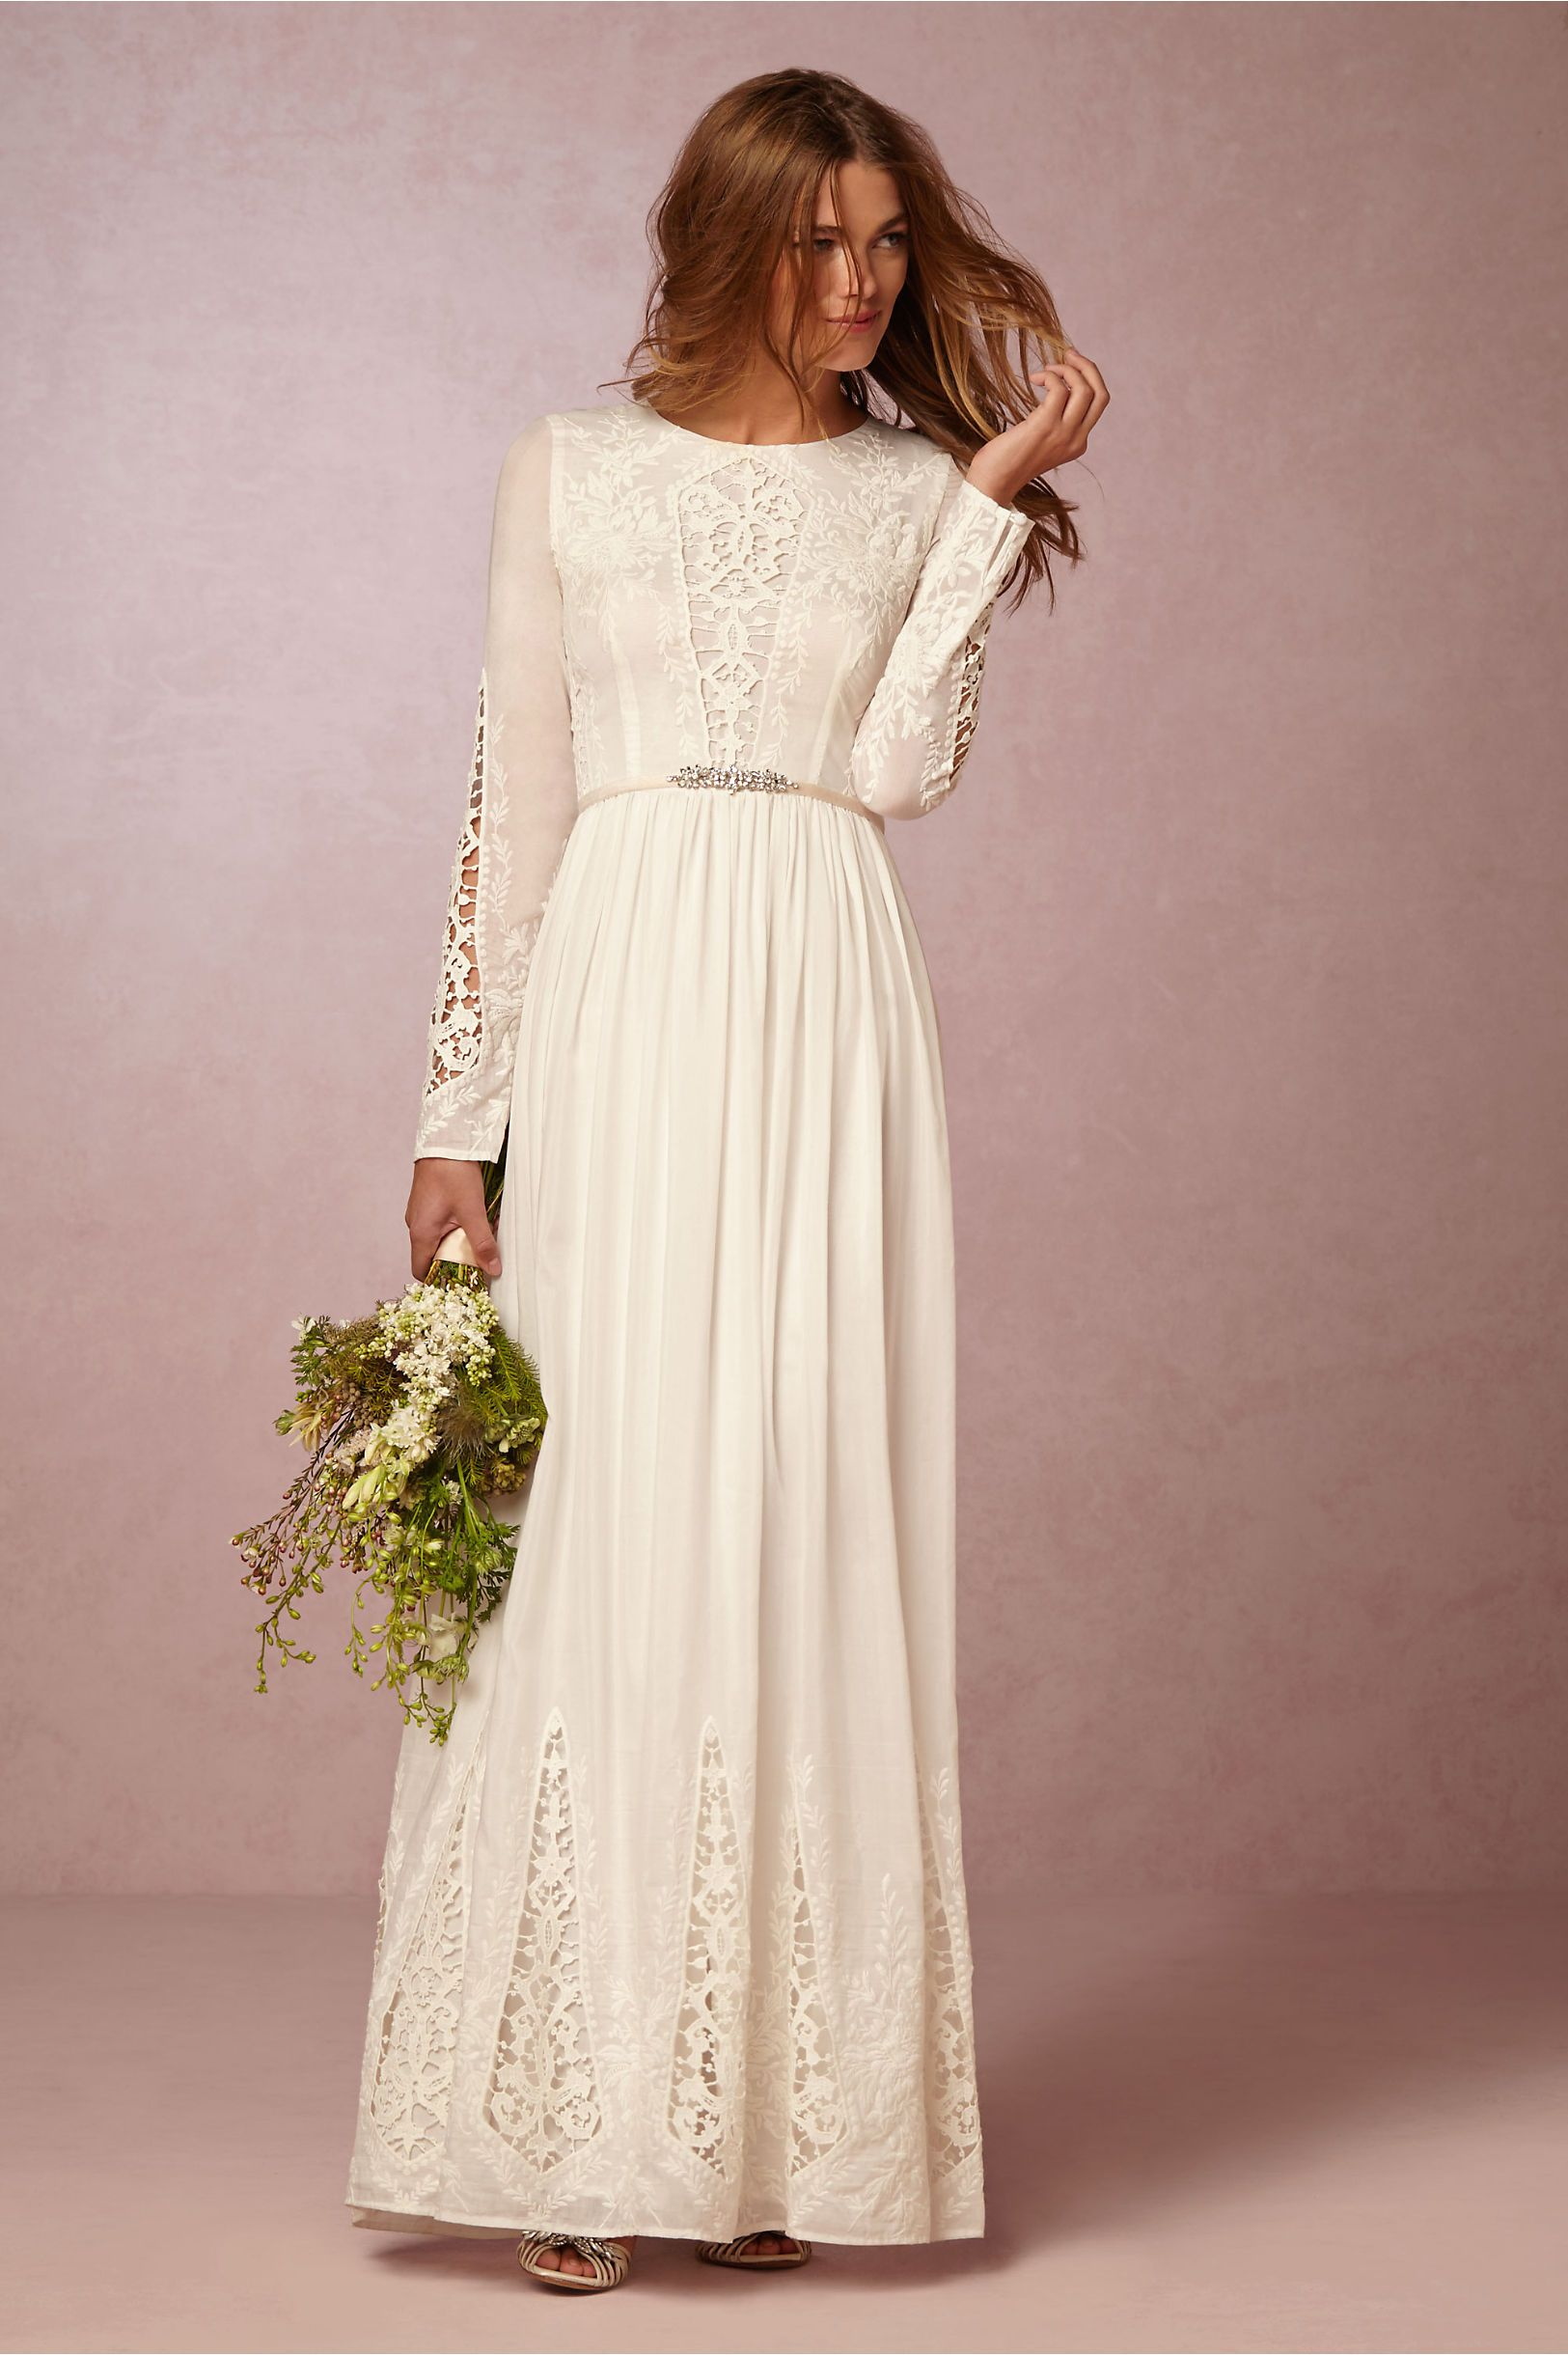 Long sleeve wedding dress bridal gown hippie style for Bohemian wedding dress shops